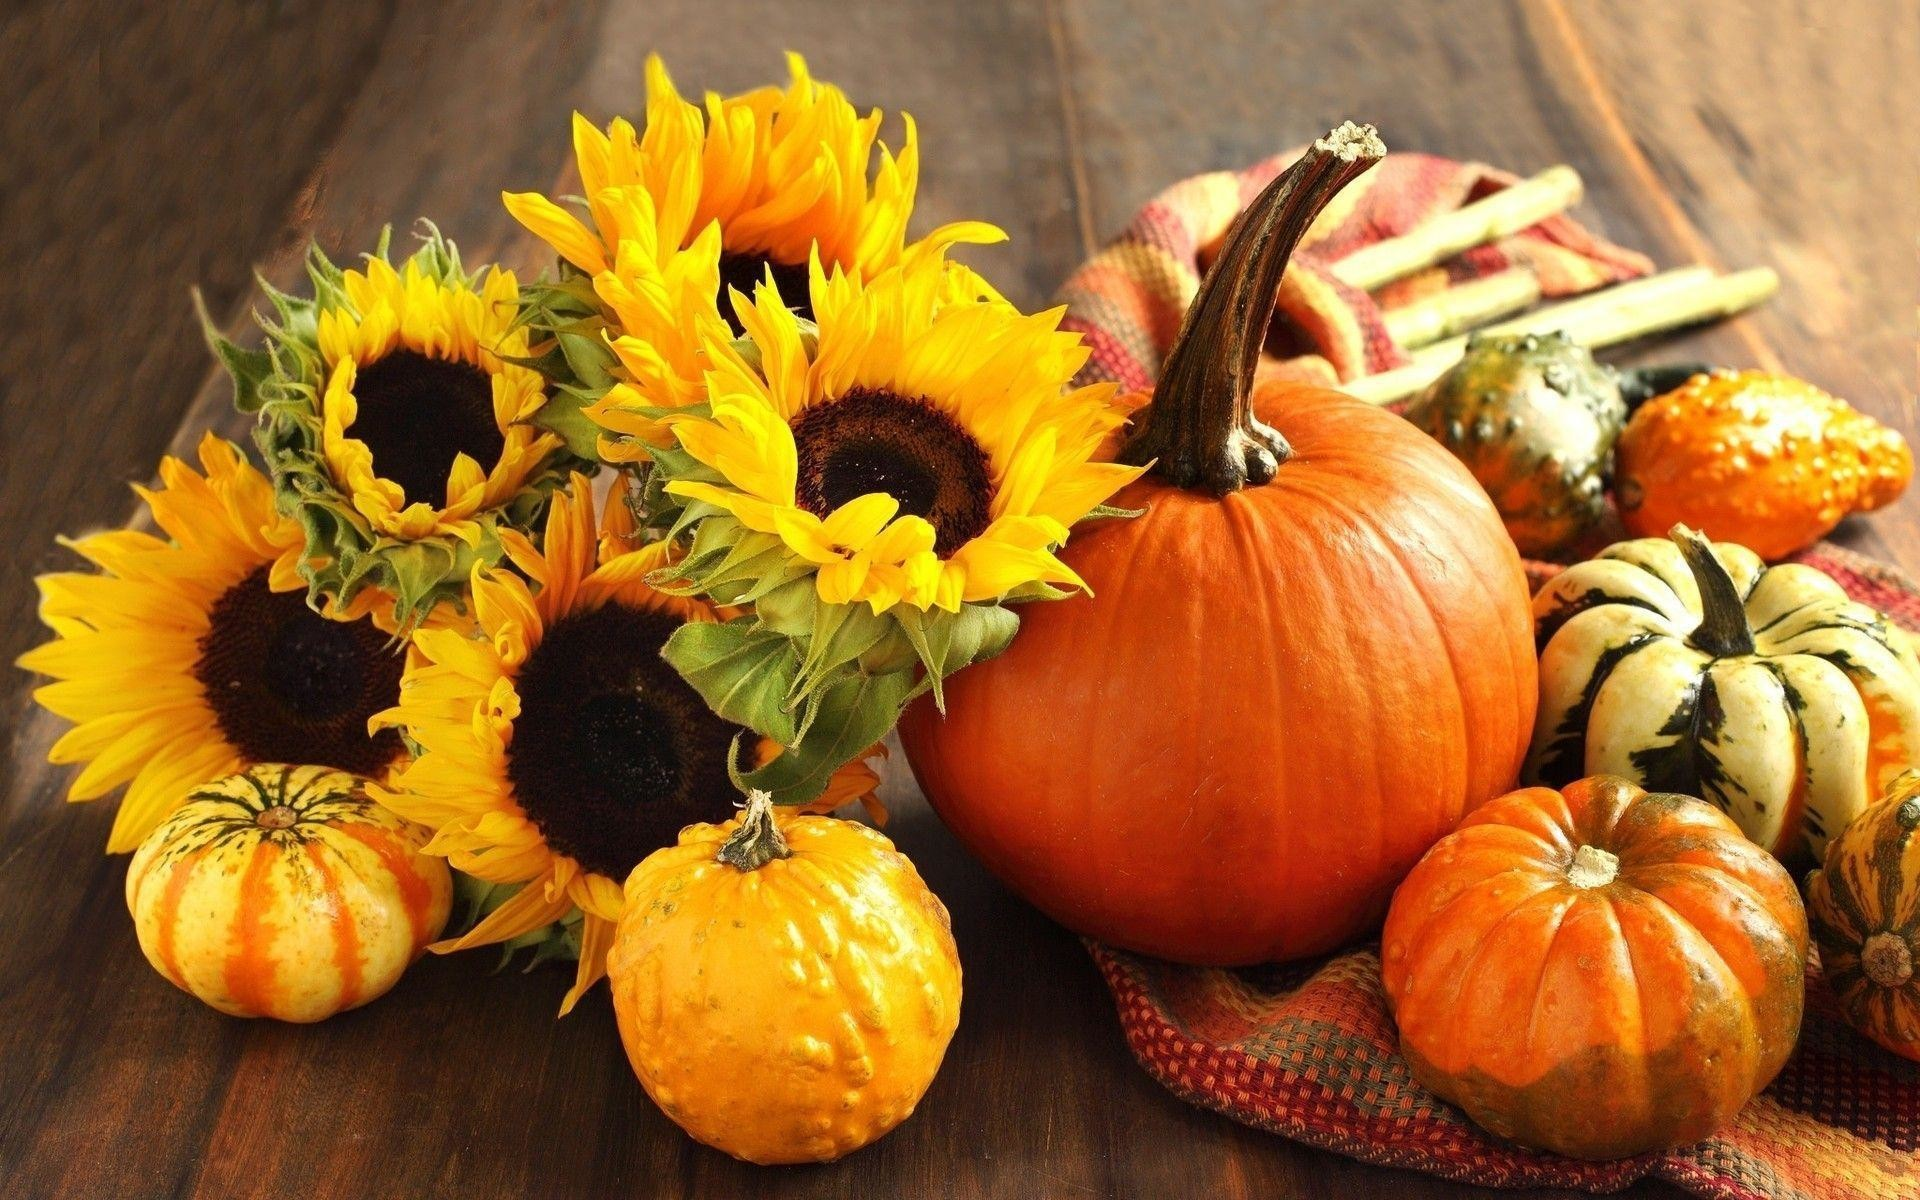 Fall Wallpaper Backgrounds With Pumpkins 55 images 1920x1200